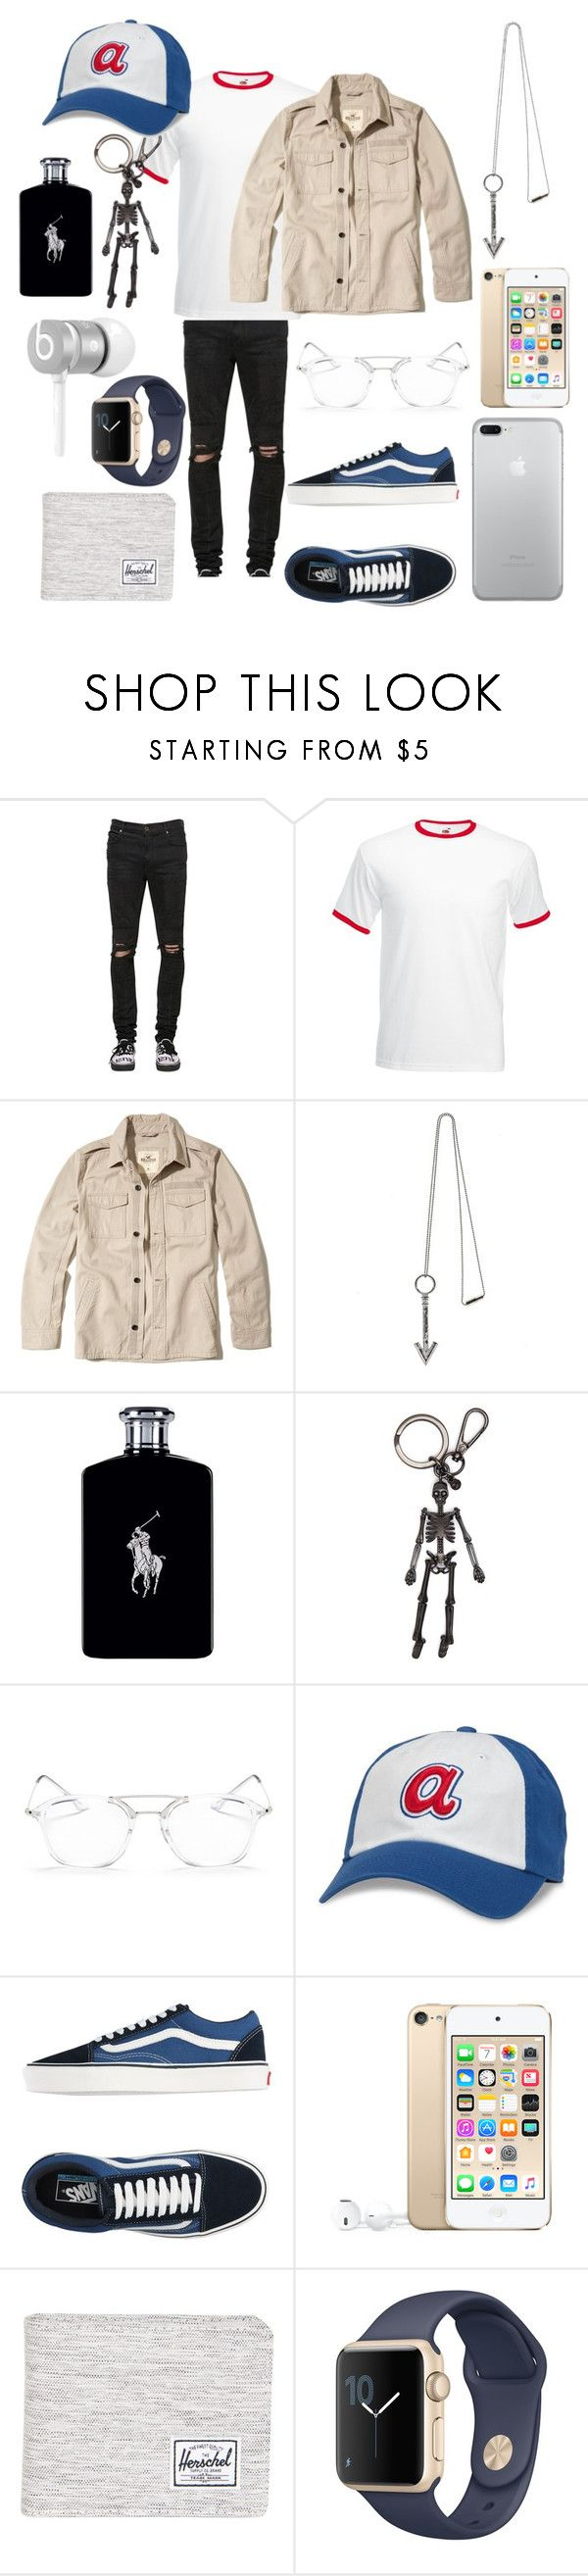 """Karev"" by vejacomotenpovoa ❤ liked on Polyvore featuring RtA, Fruit of the Loom, Hollister Co., Lanvin, Ralph Lauren, Alexander McQueen, Ray-Ban, American Needle, Vans and Beats by Dr. Dre"